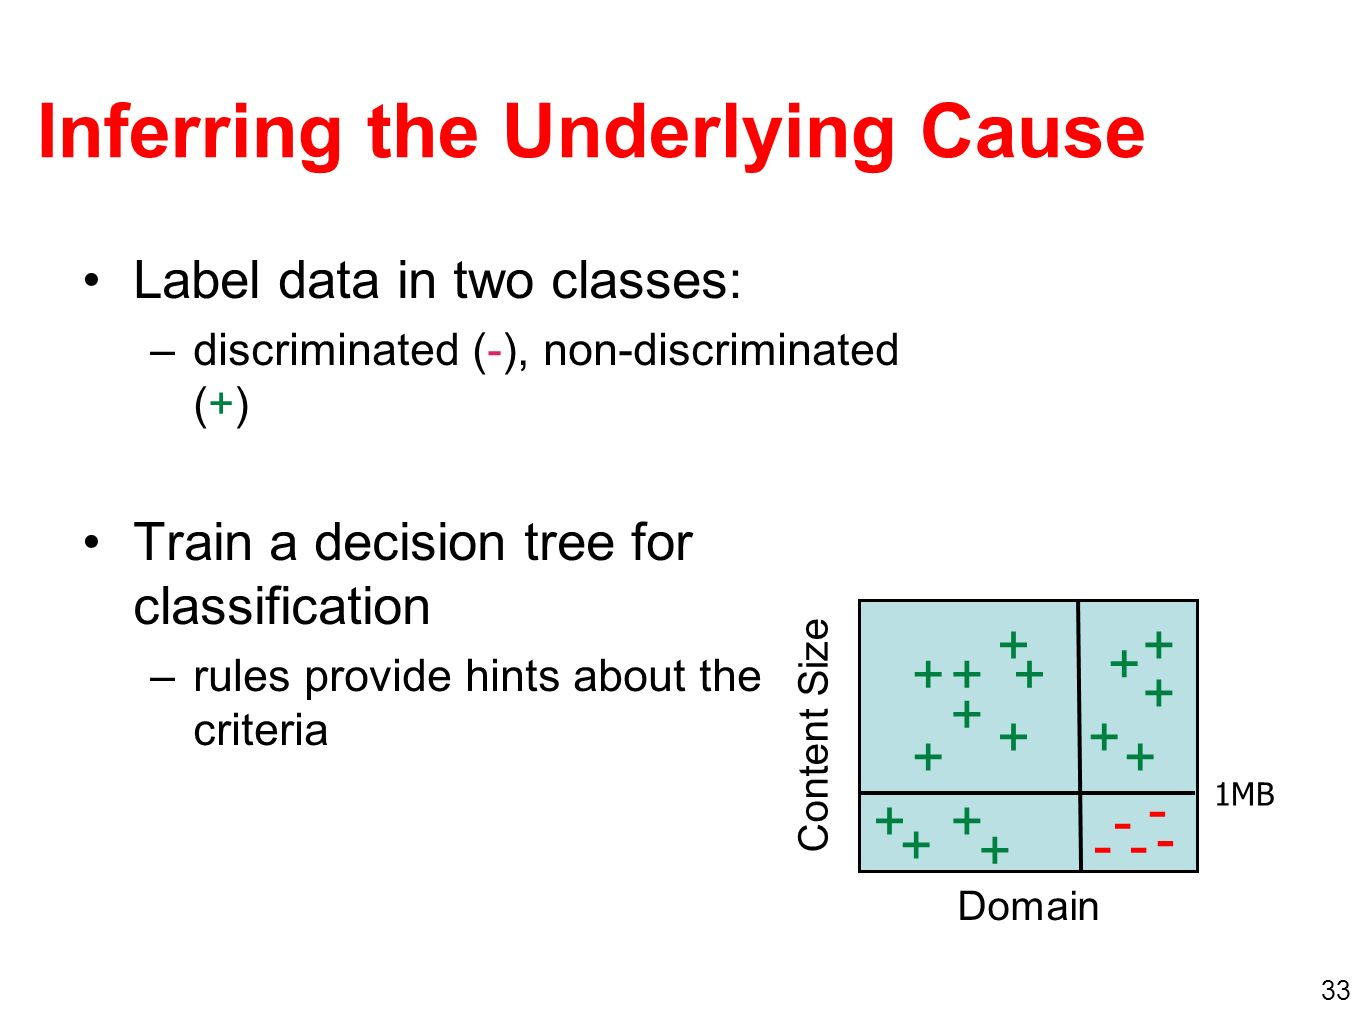 33 + Domain Content Size MB Inferring the Underlying Cause Label data in two classes: –discriminated (-), non-discriminated (+) Train a decision tree for classification –rules provide hints about the criteria